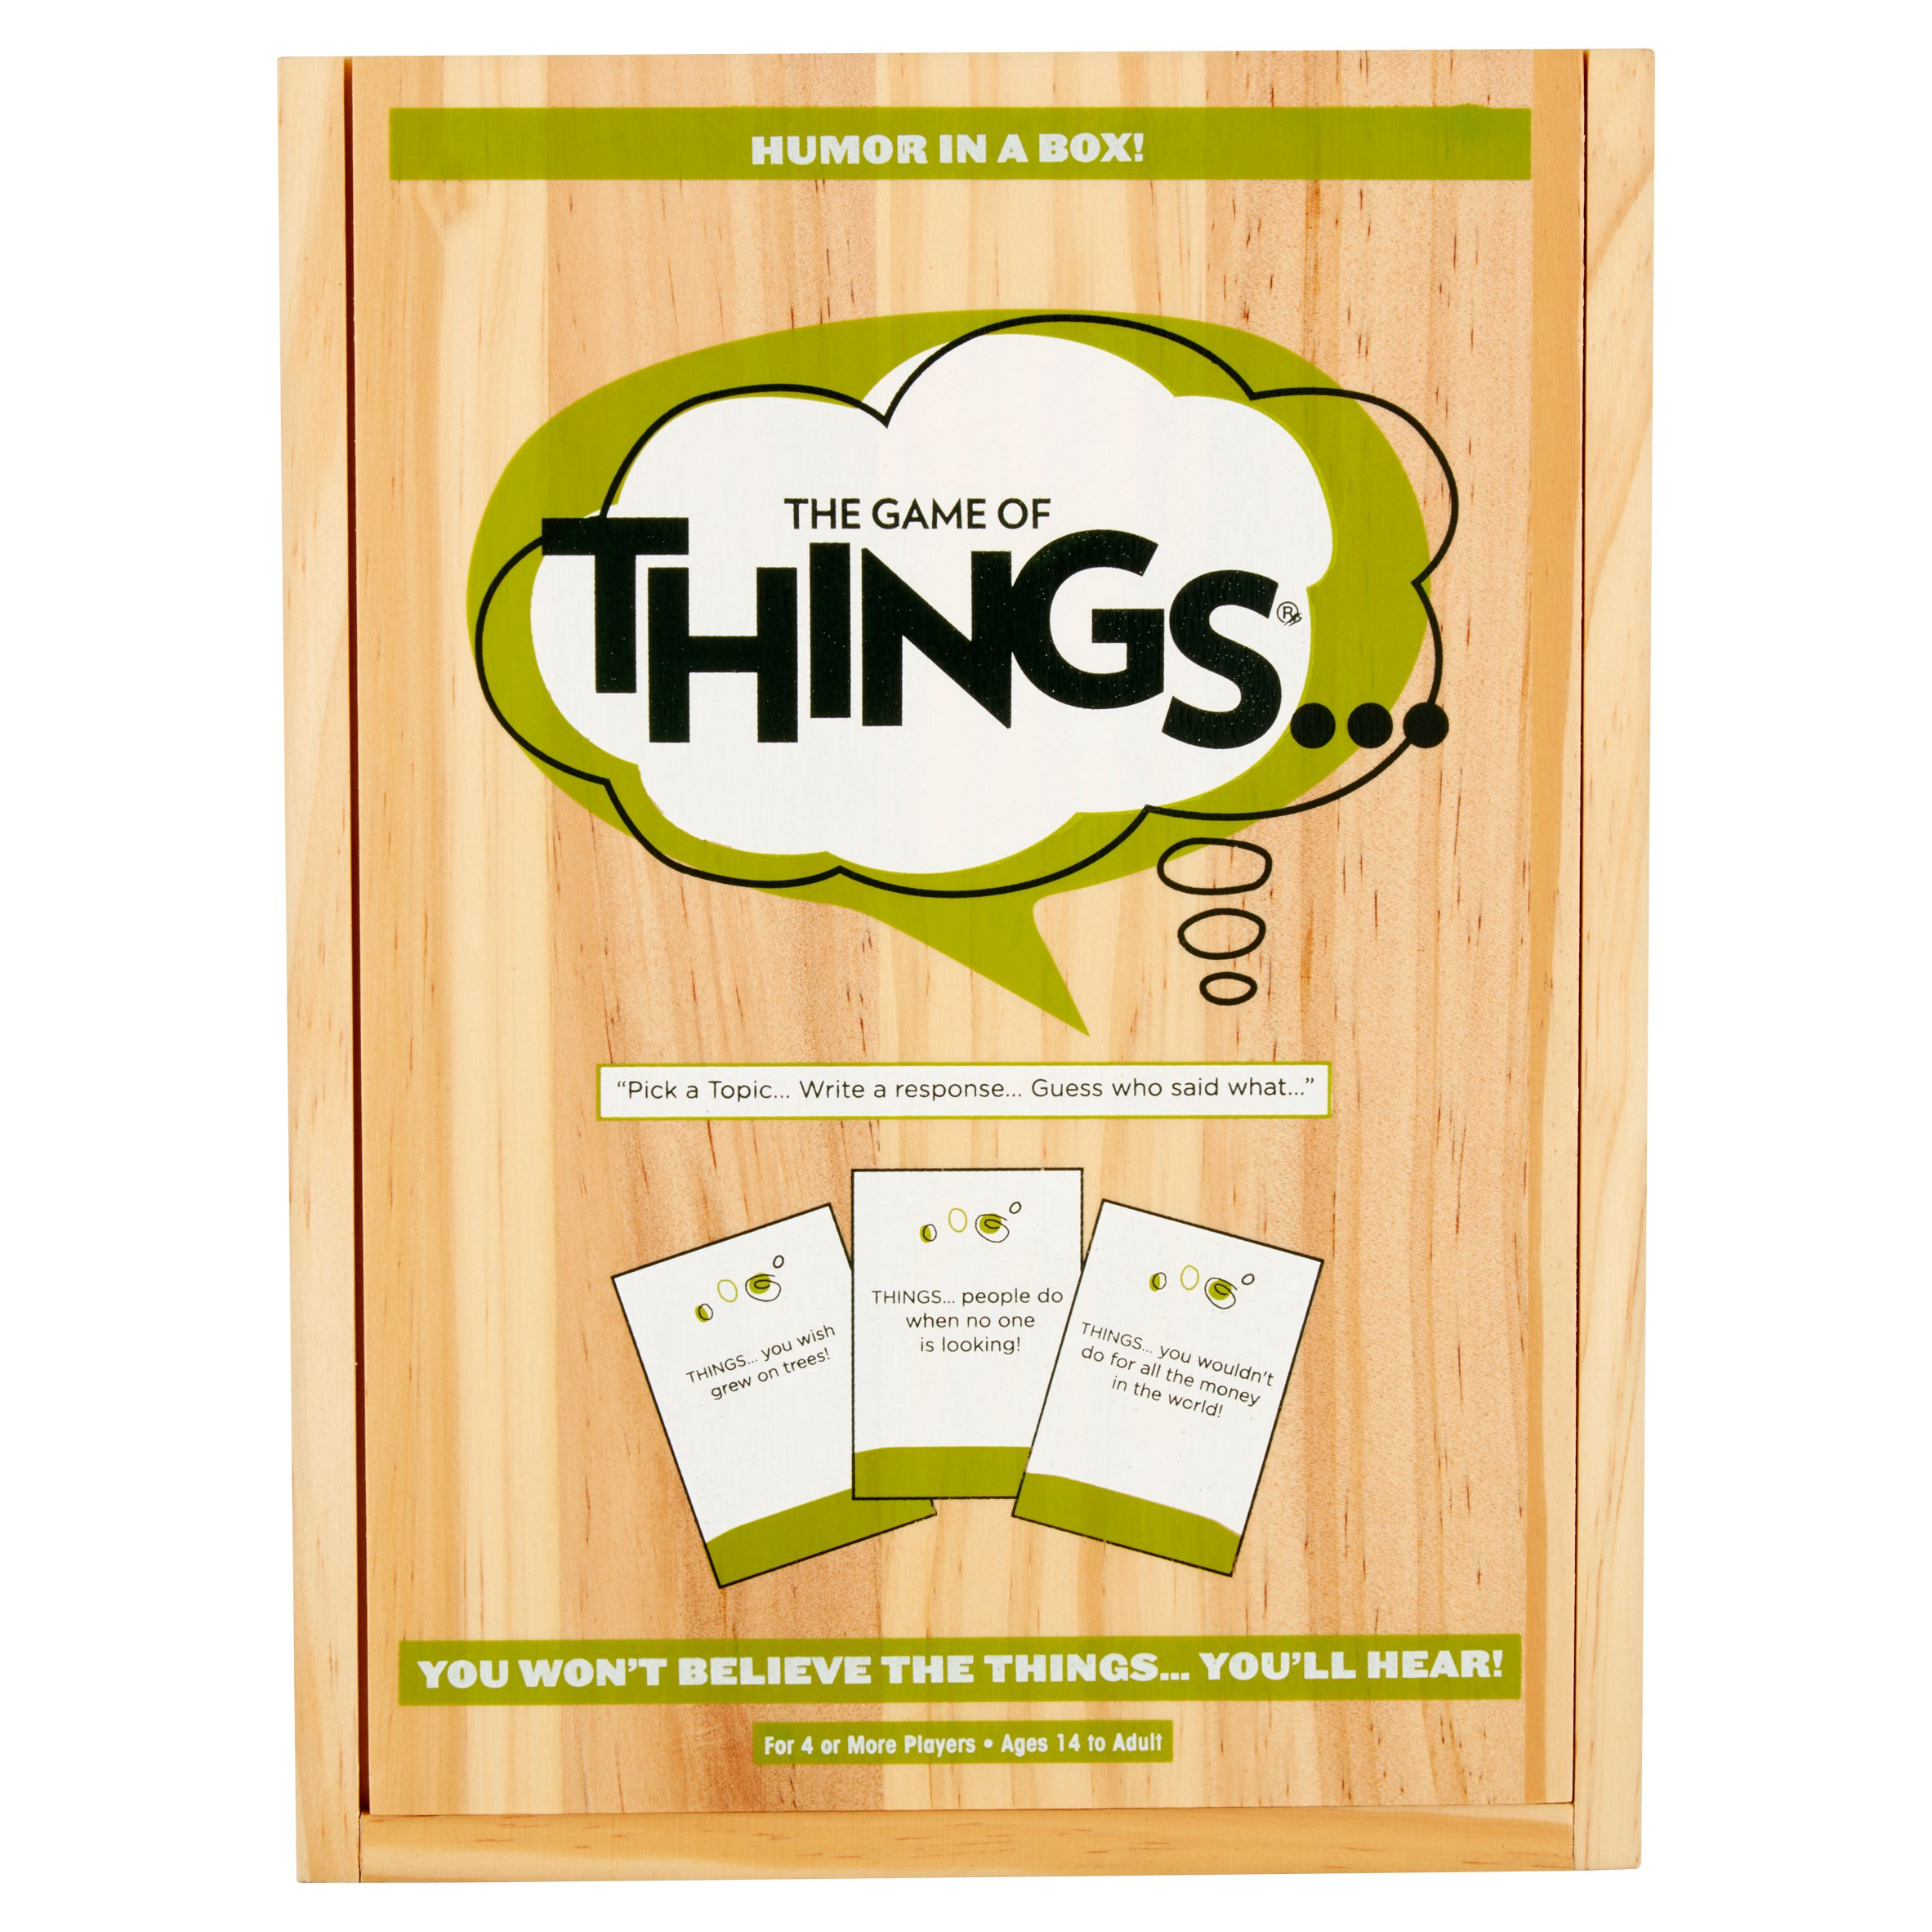 The Game of Things Humor in a Box! Ages 14 to Adult